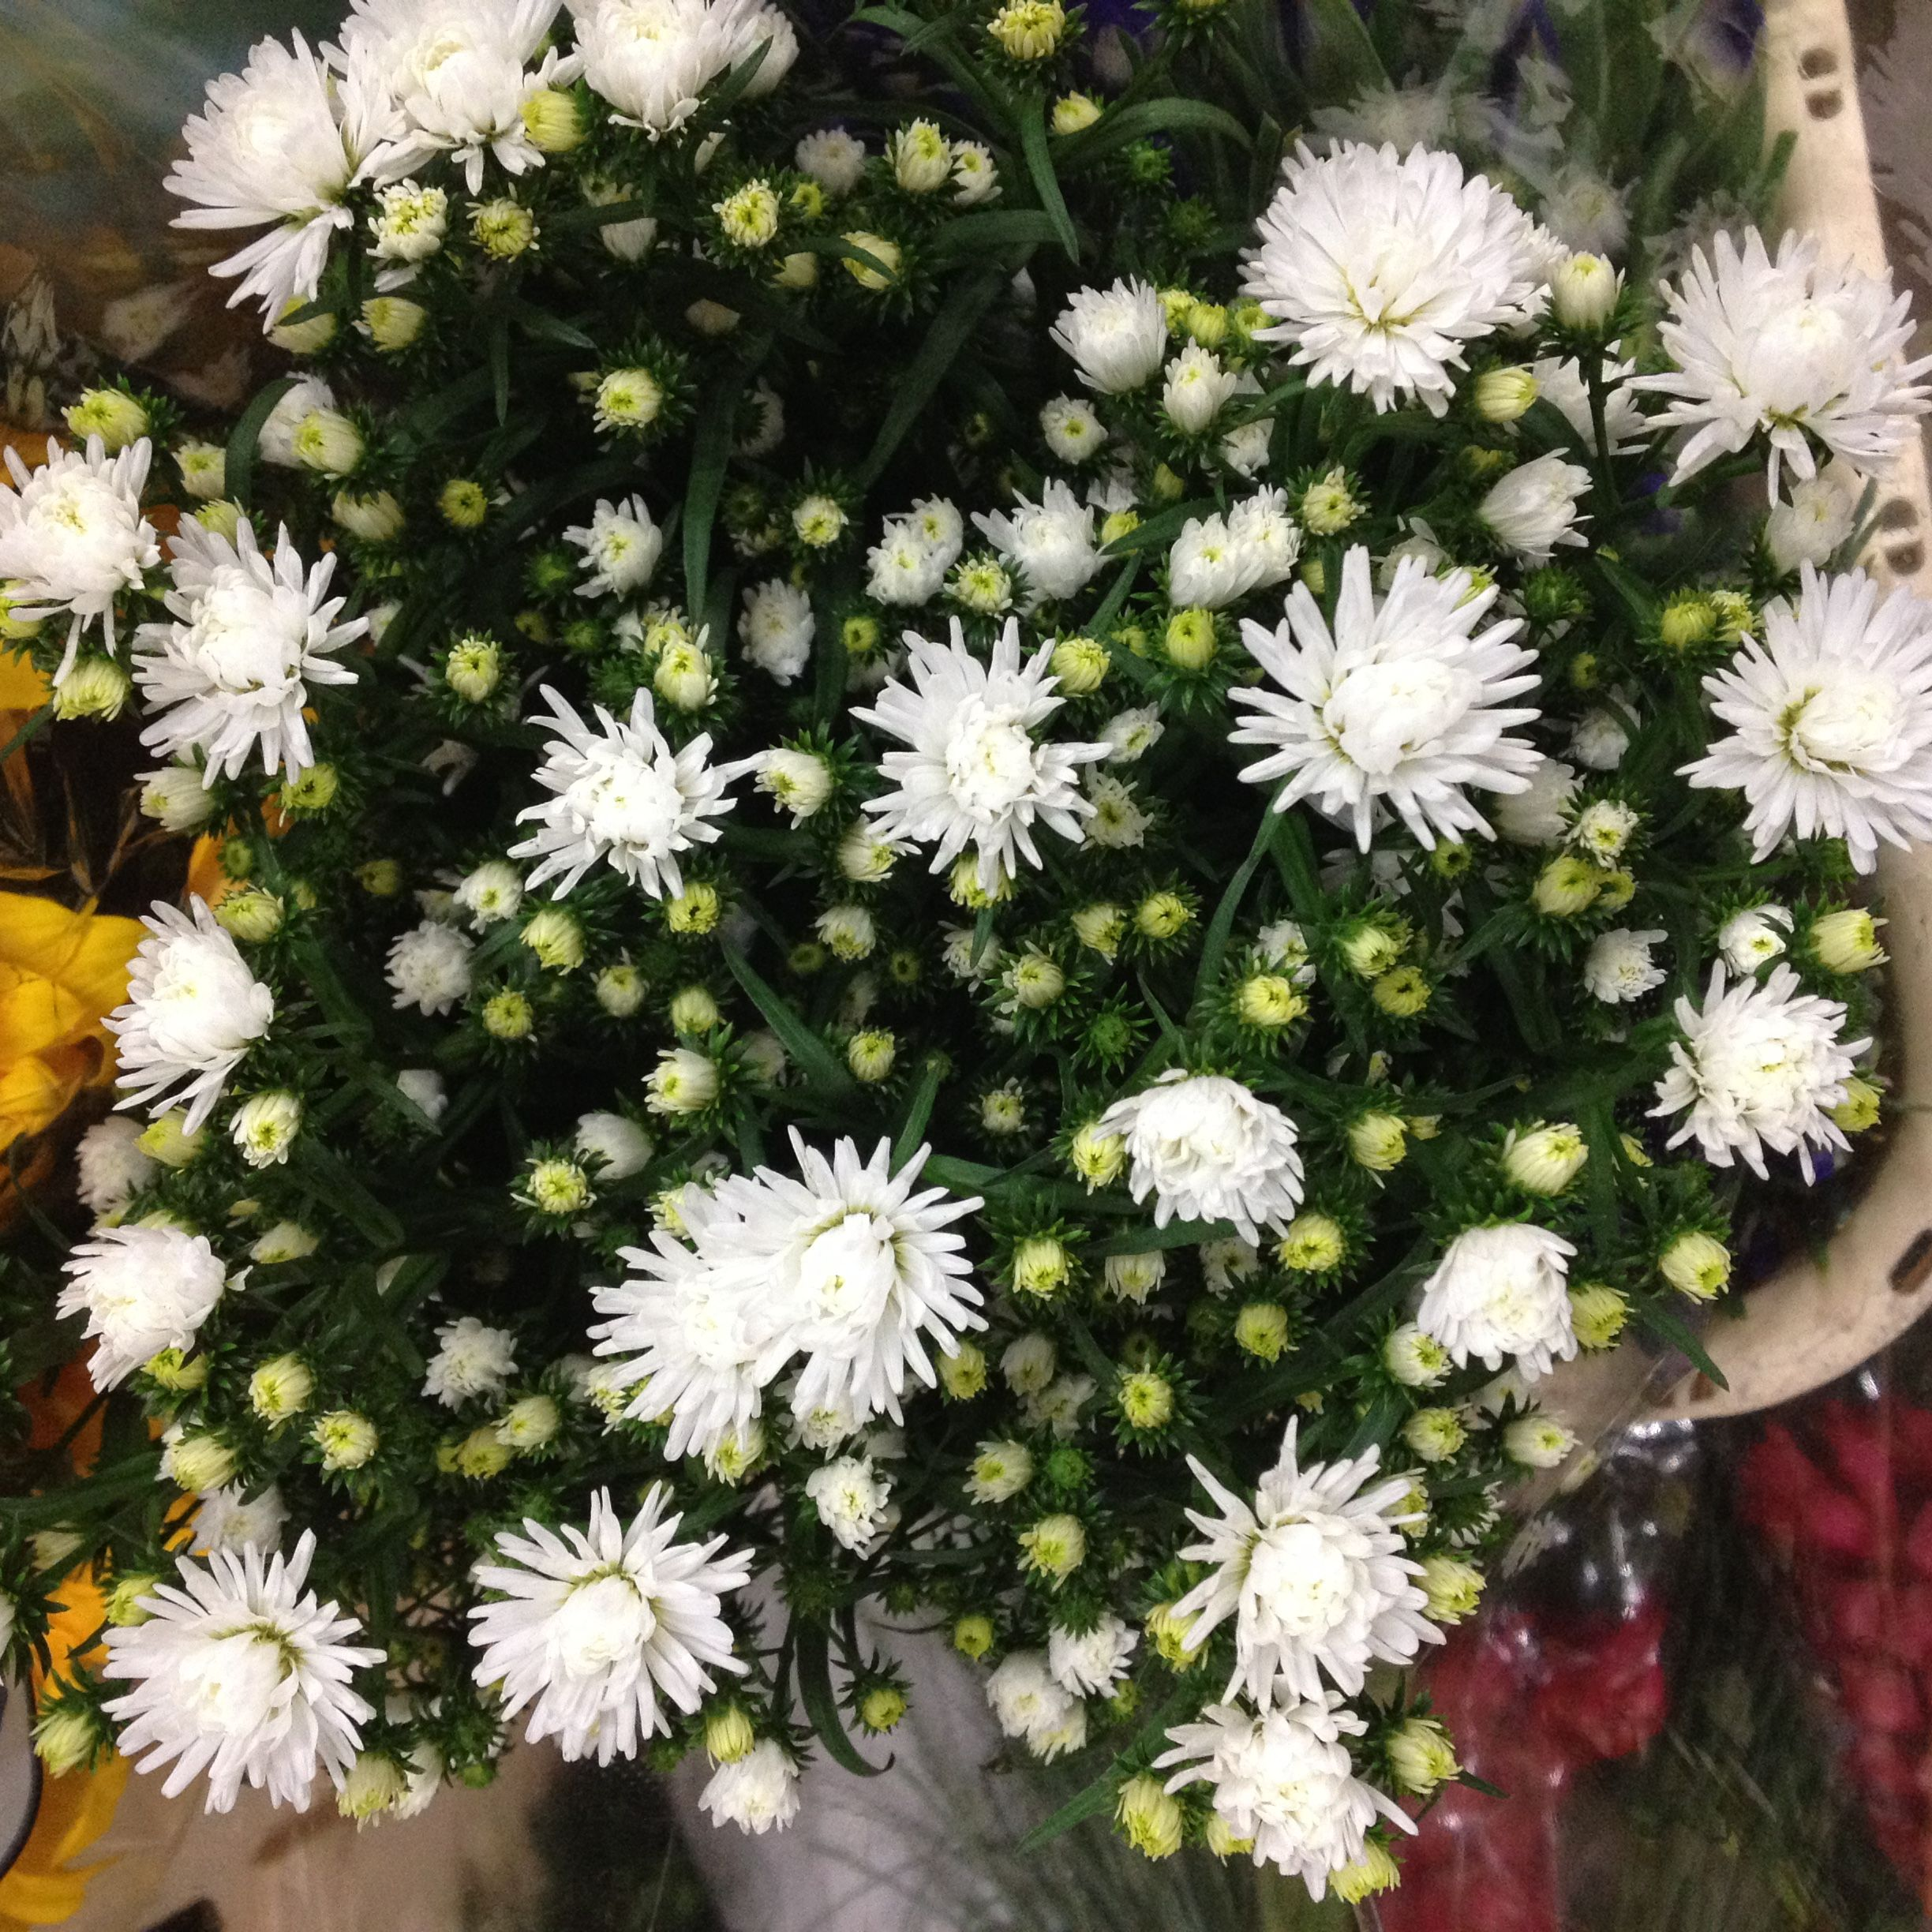 White Double September Flower Called Pretty Wendy Sold In Bunches Of 5 Stems From